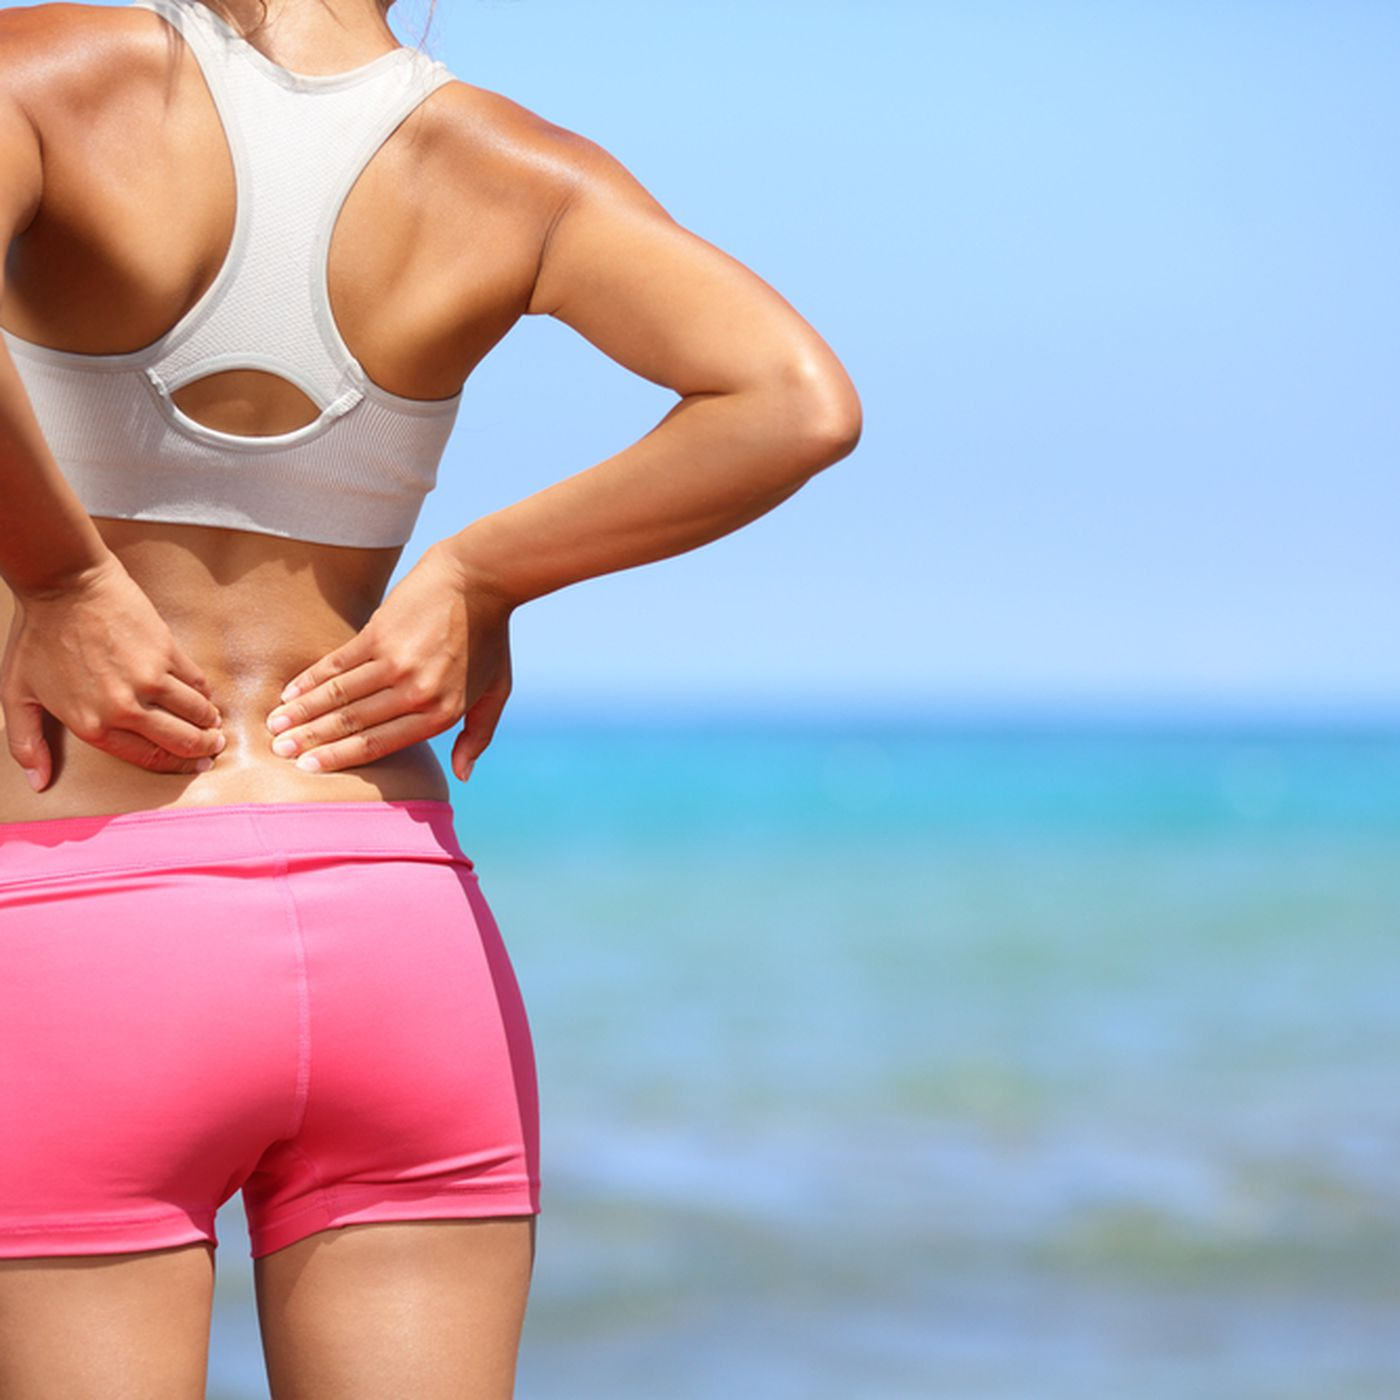 How Much Does It Cost to Treat Back Pain?